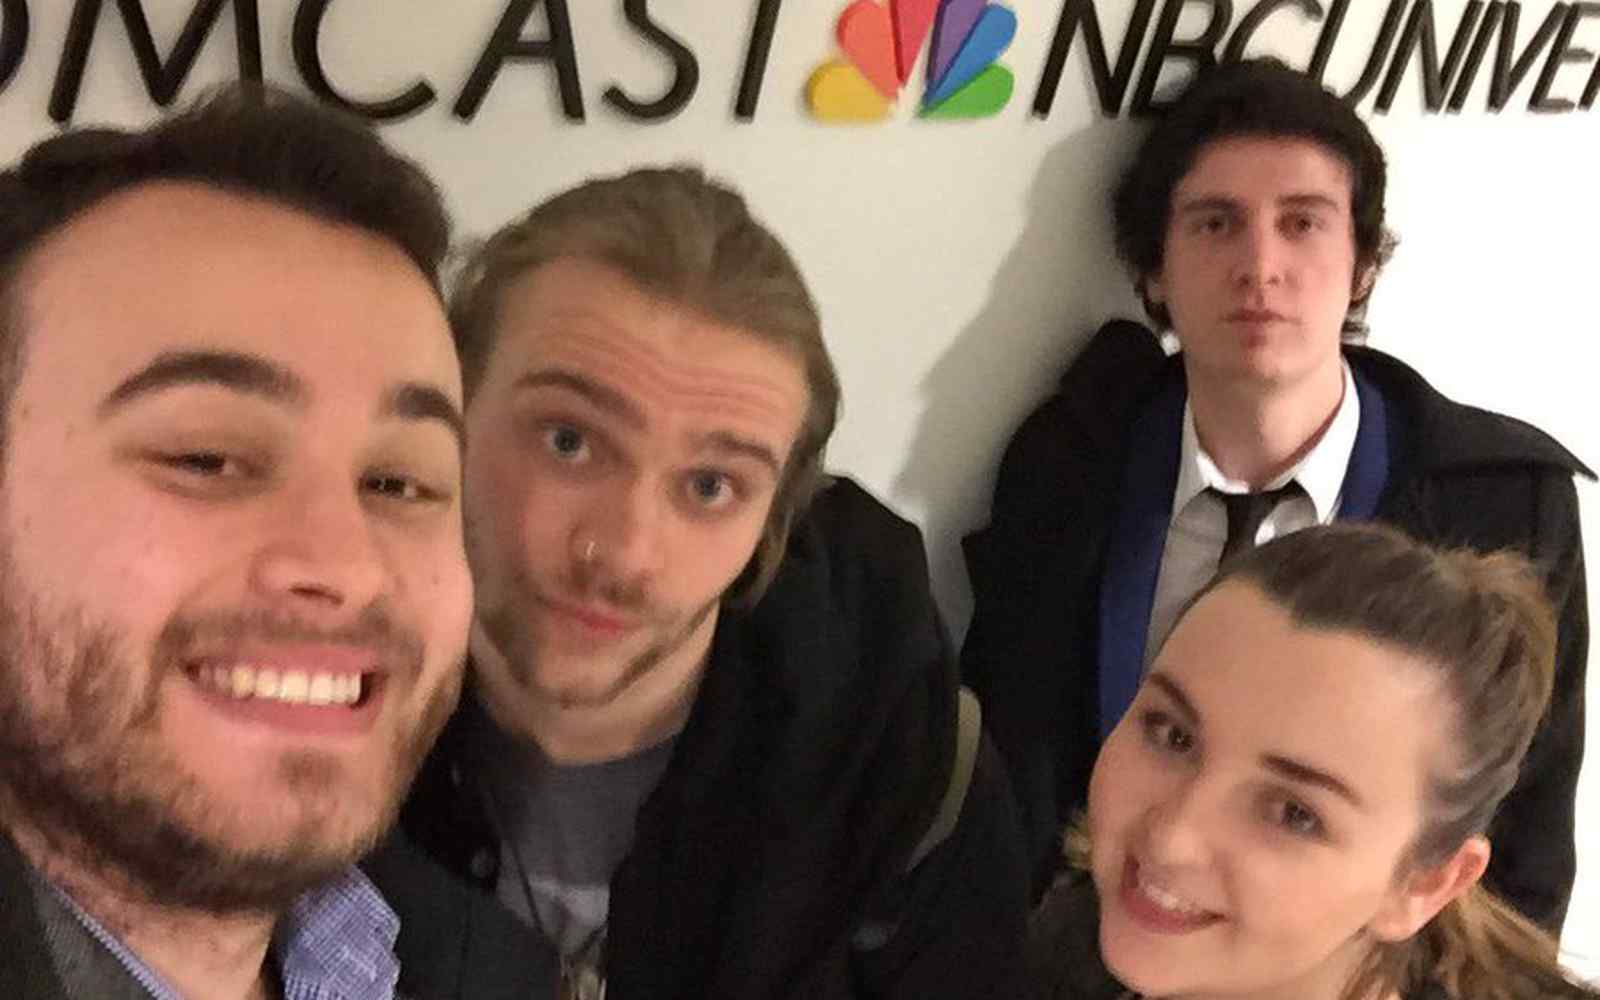 Liam Taylor-Rutterford, Kyle Bell and Beth Sigsworth at NBC Universal